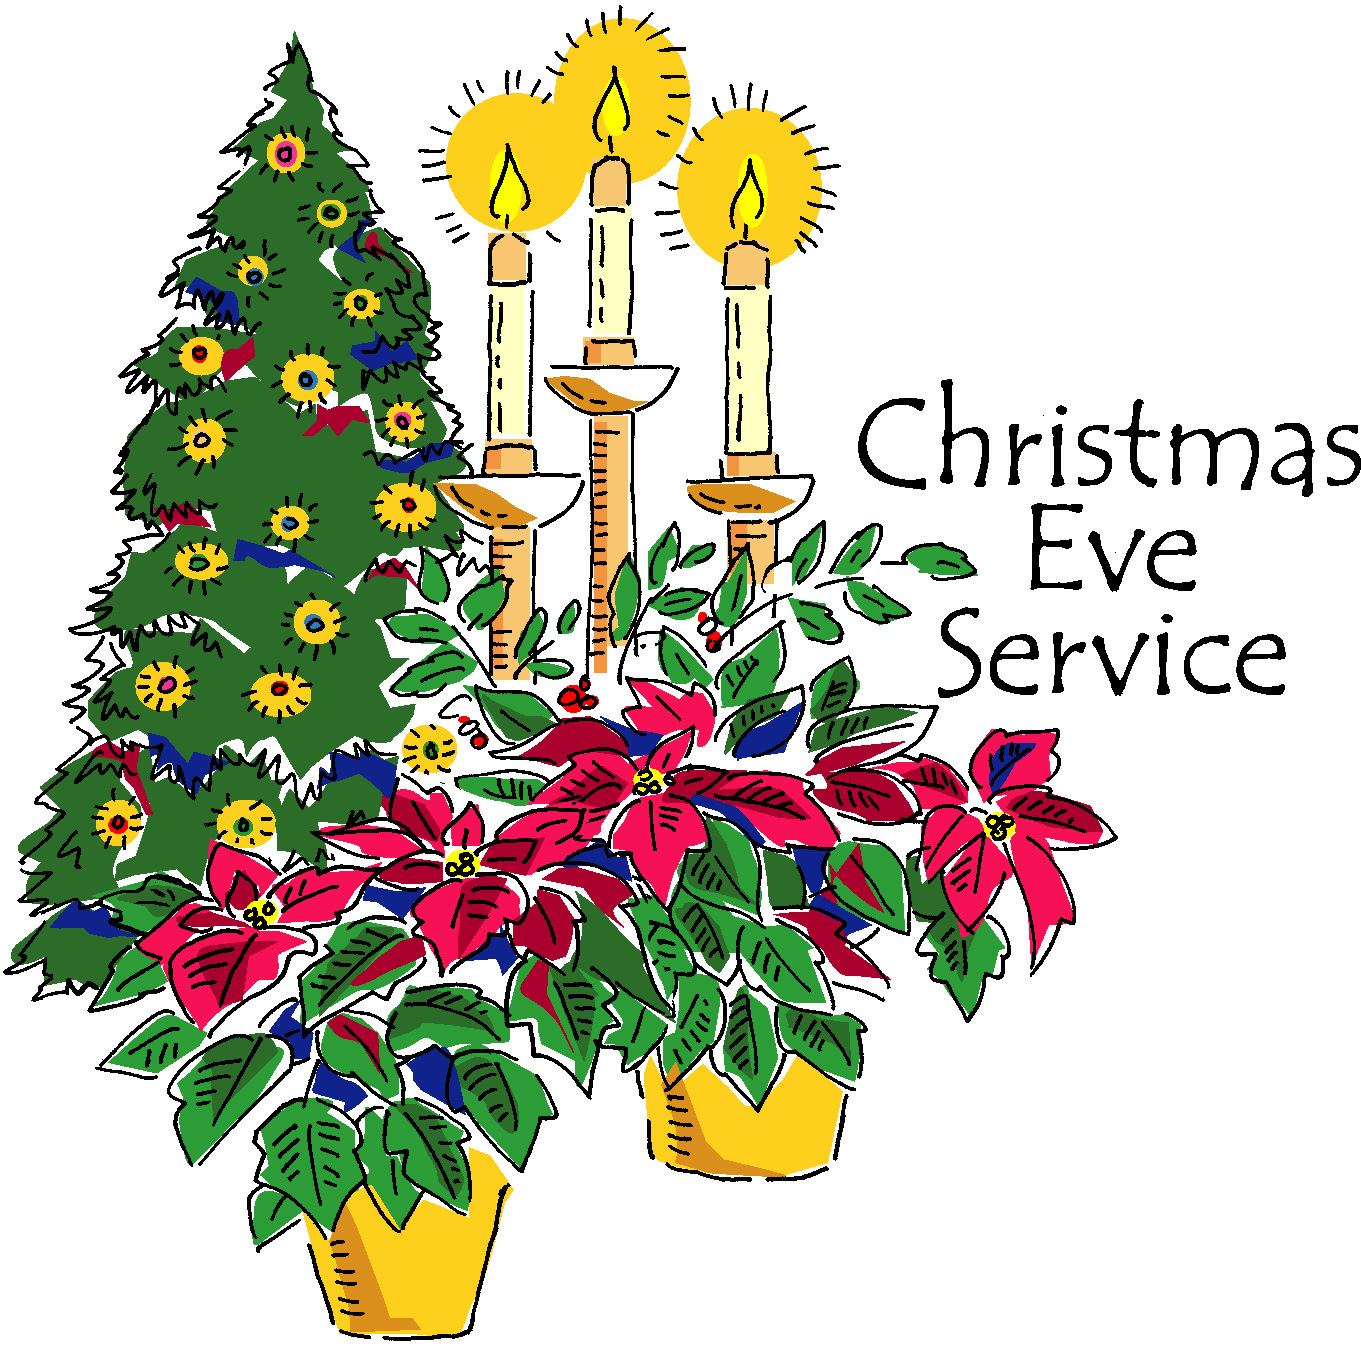 Directors clipart images amp pictures becuo - Christmas Eve